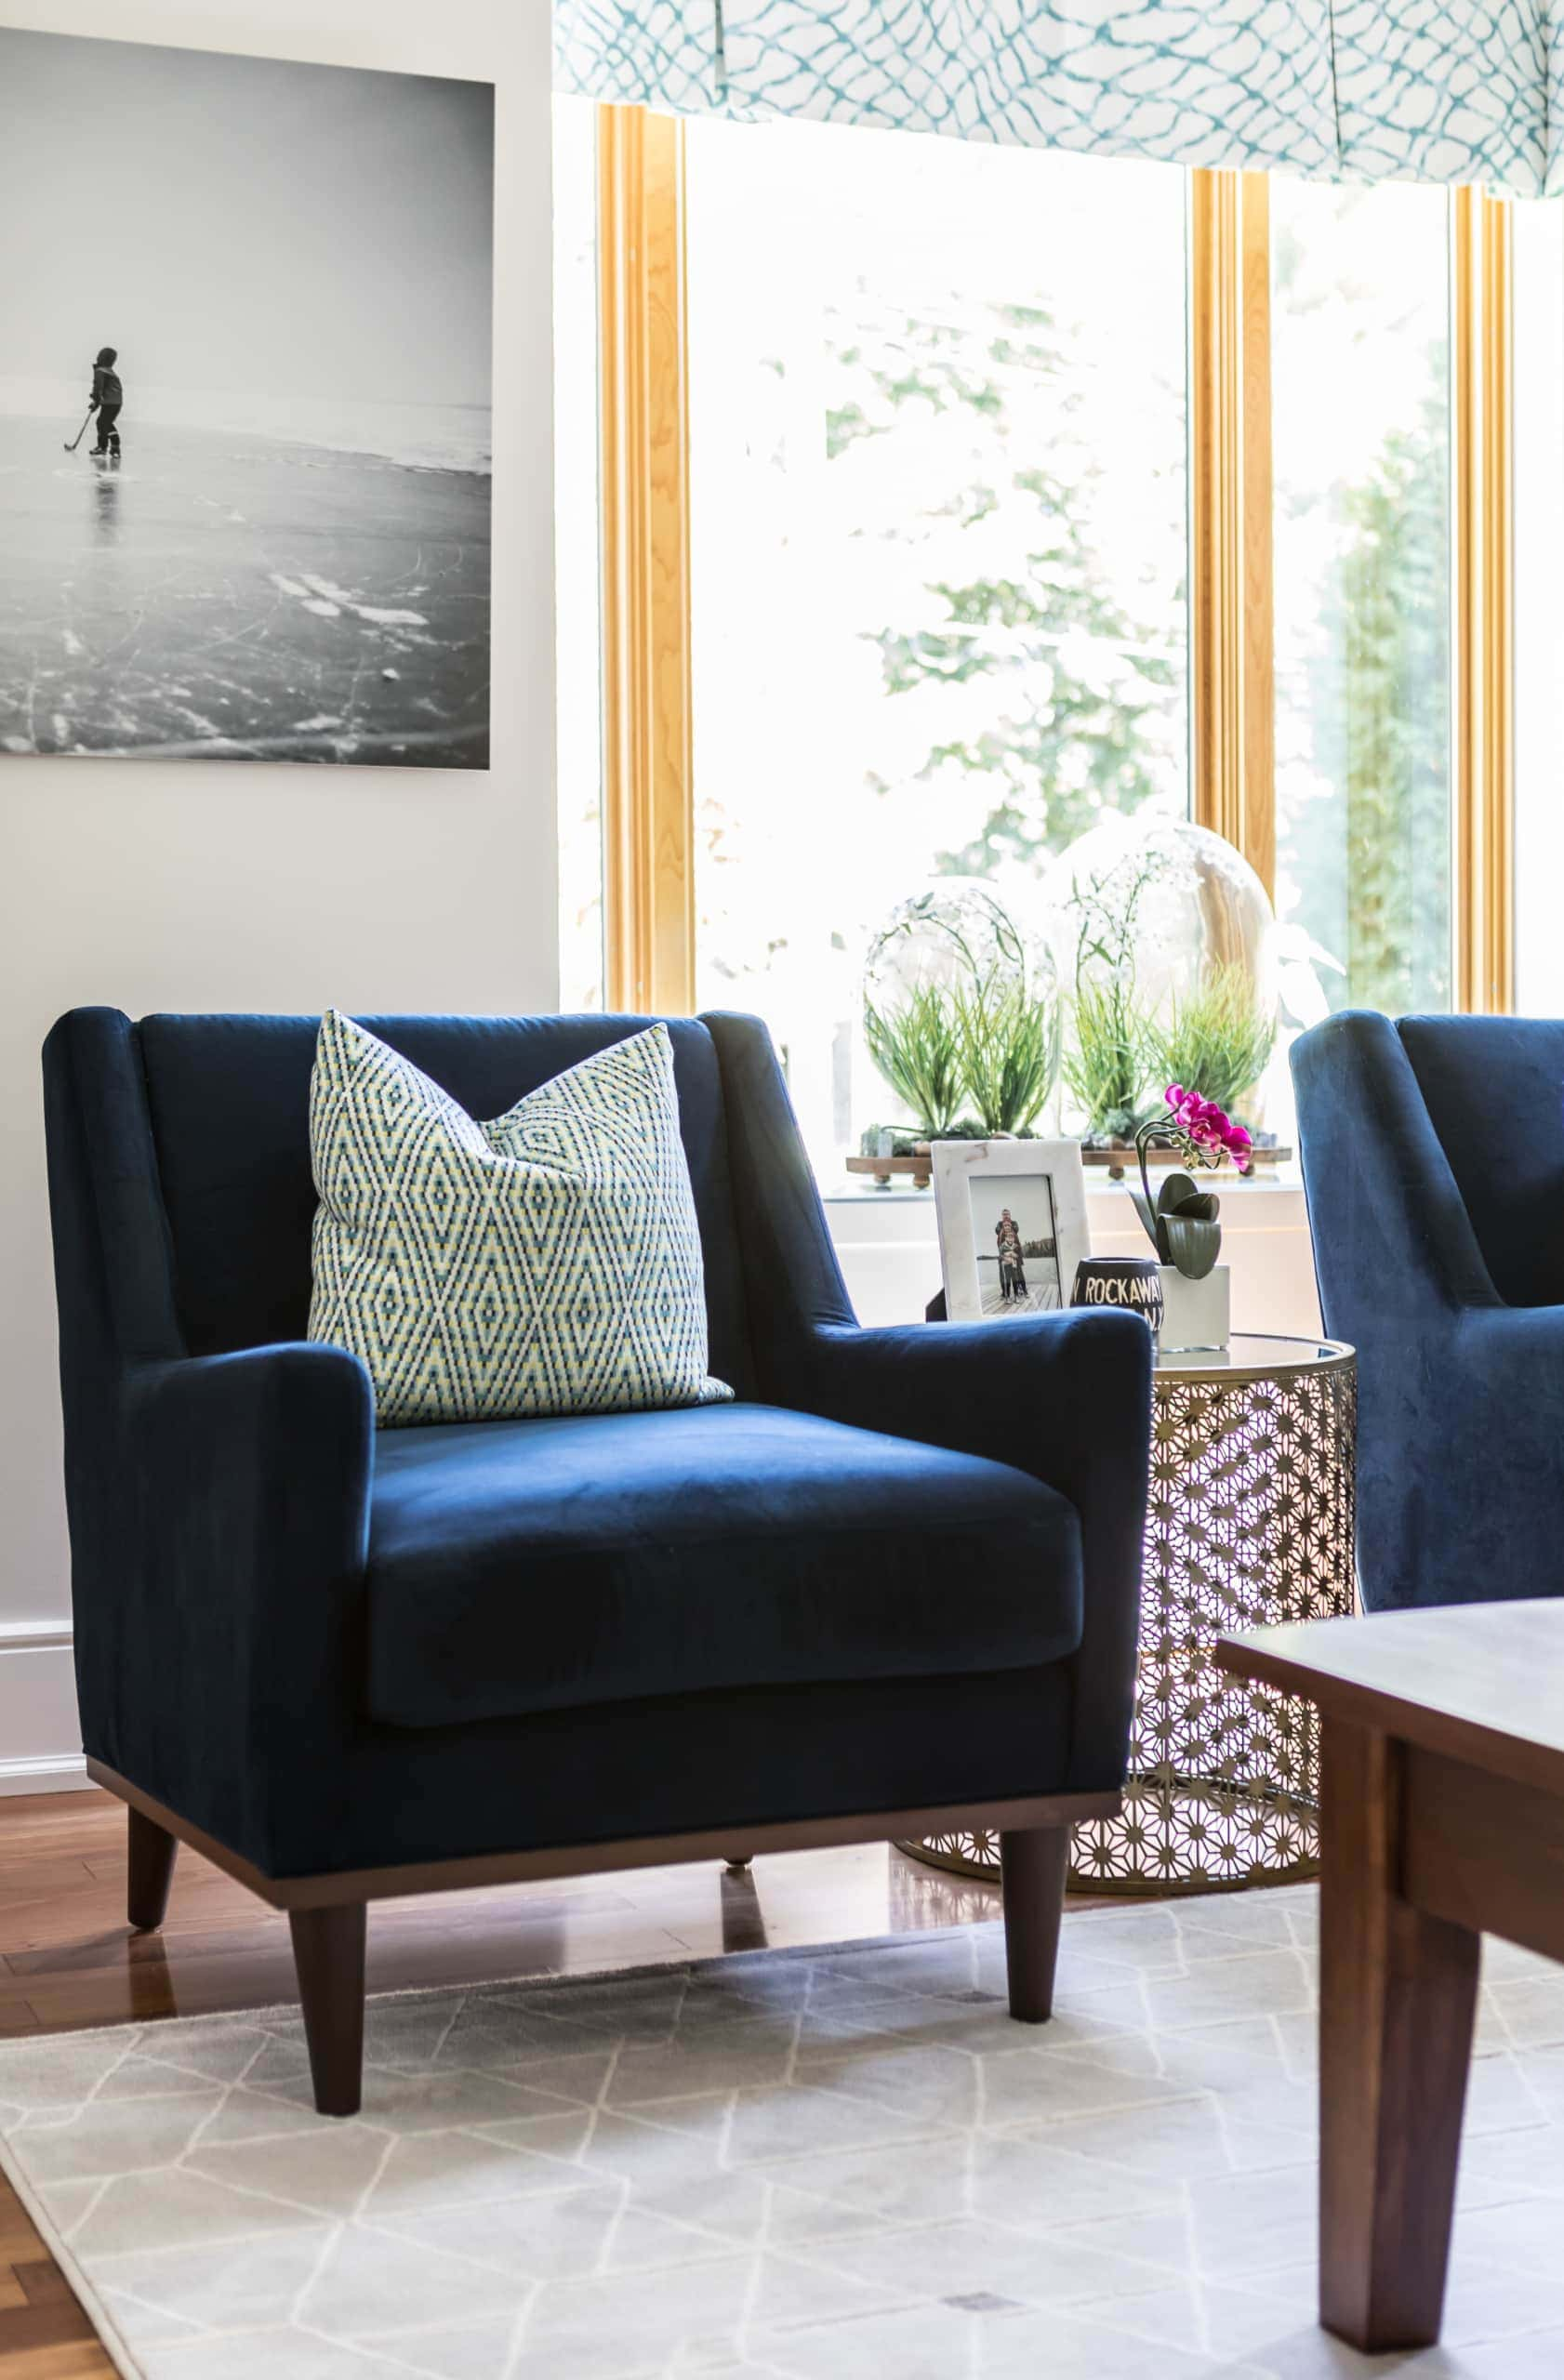 Blue chairs against a large window